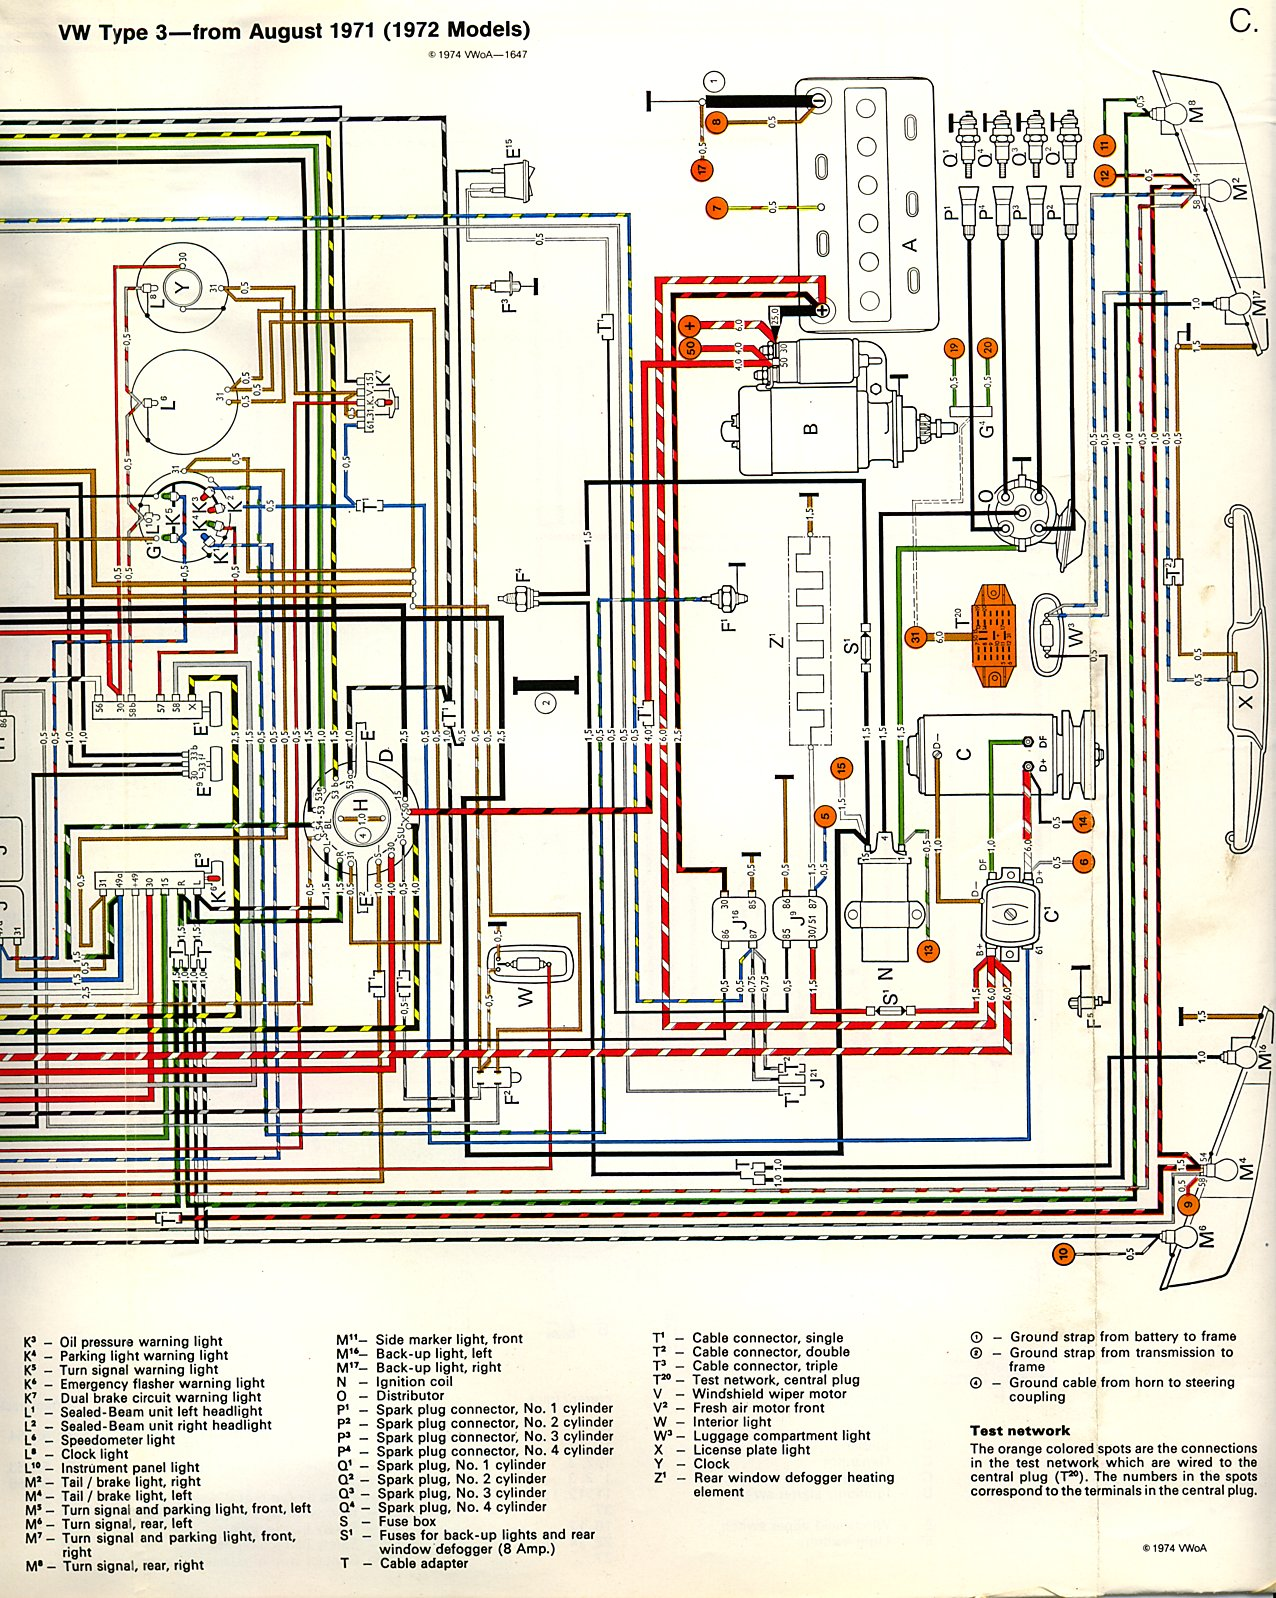 hight resolution of 1964 type 3 vw wiring diagram 29 wiring diagram images wiring diagrams for 2007 volkswagen vw